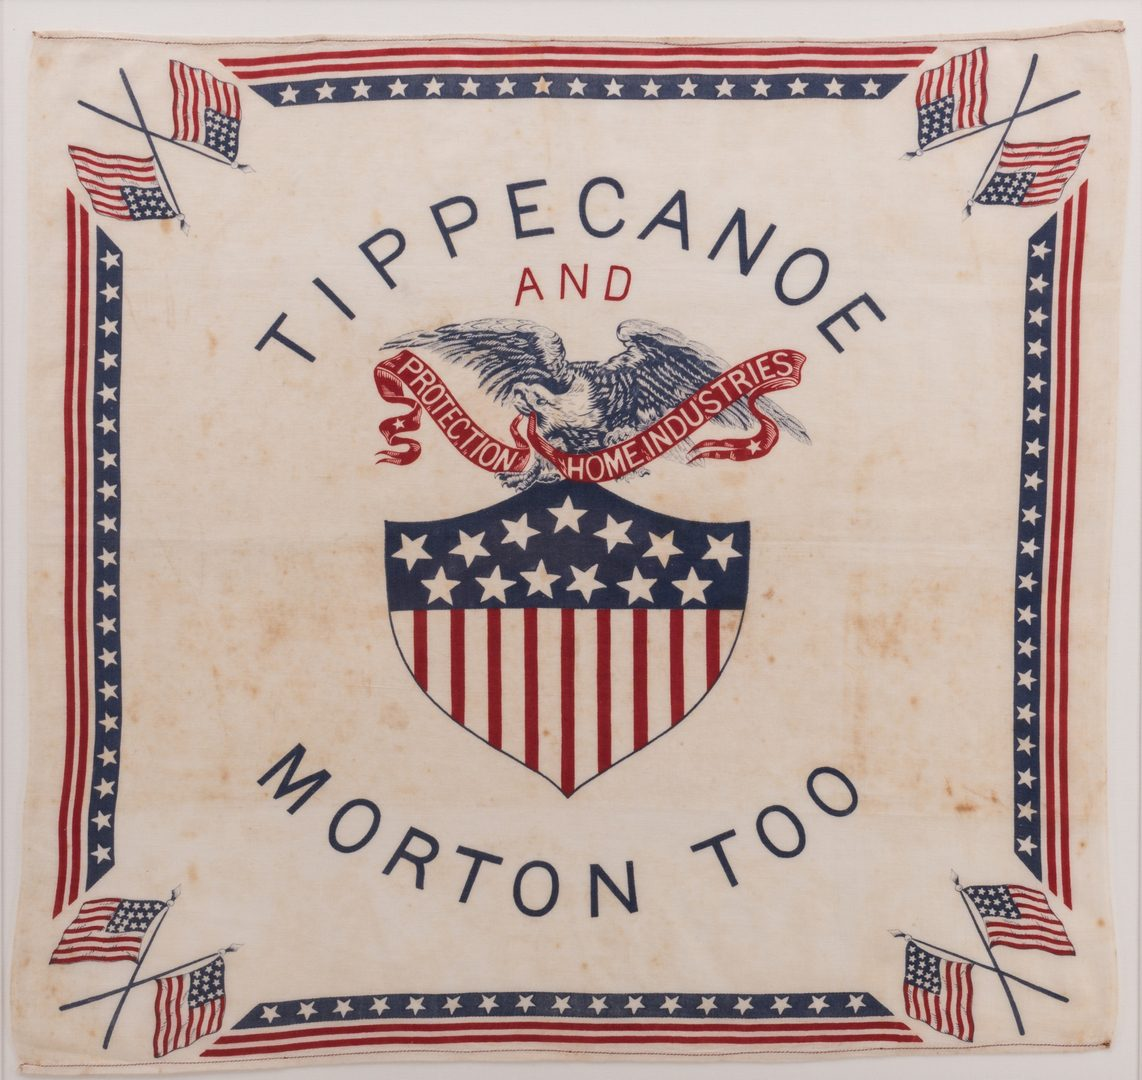 Lot 776: Campaign Bandana and War Bond Illustration Art, 2 items